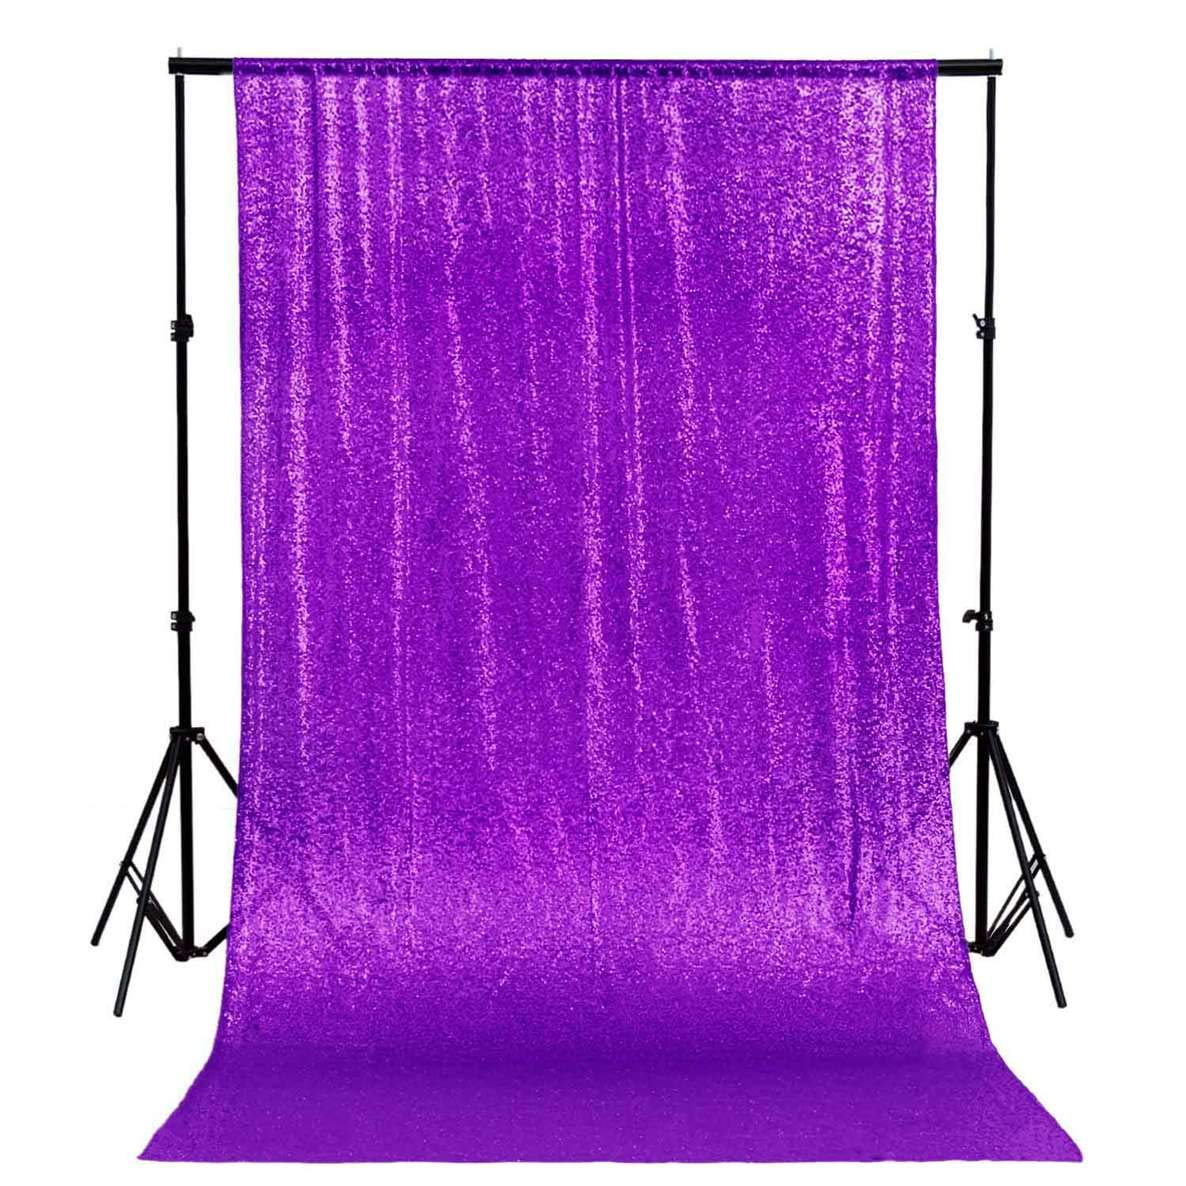 ShinyBeauty 20FTx10FT-Purple-Sequin Backdrop, for Party or Wedding Sequin Photo Booth Backdrop,Wedding Backdrop, Photo Backdrop,Glitz Backdrop,Sequin Curtains N1220